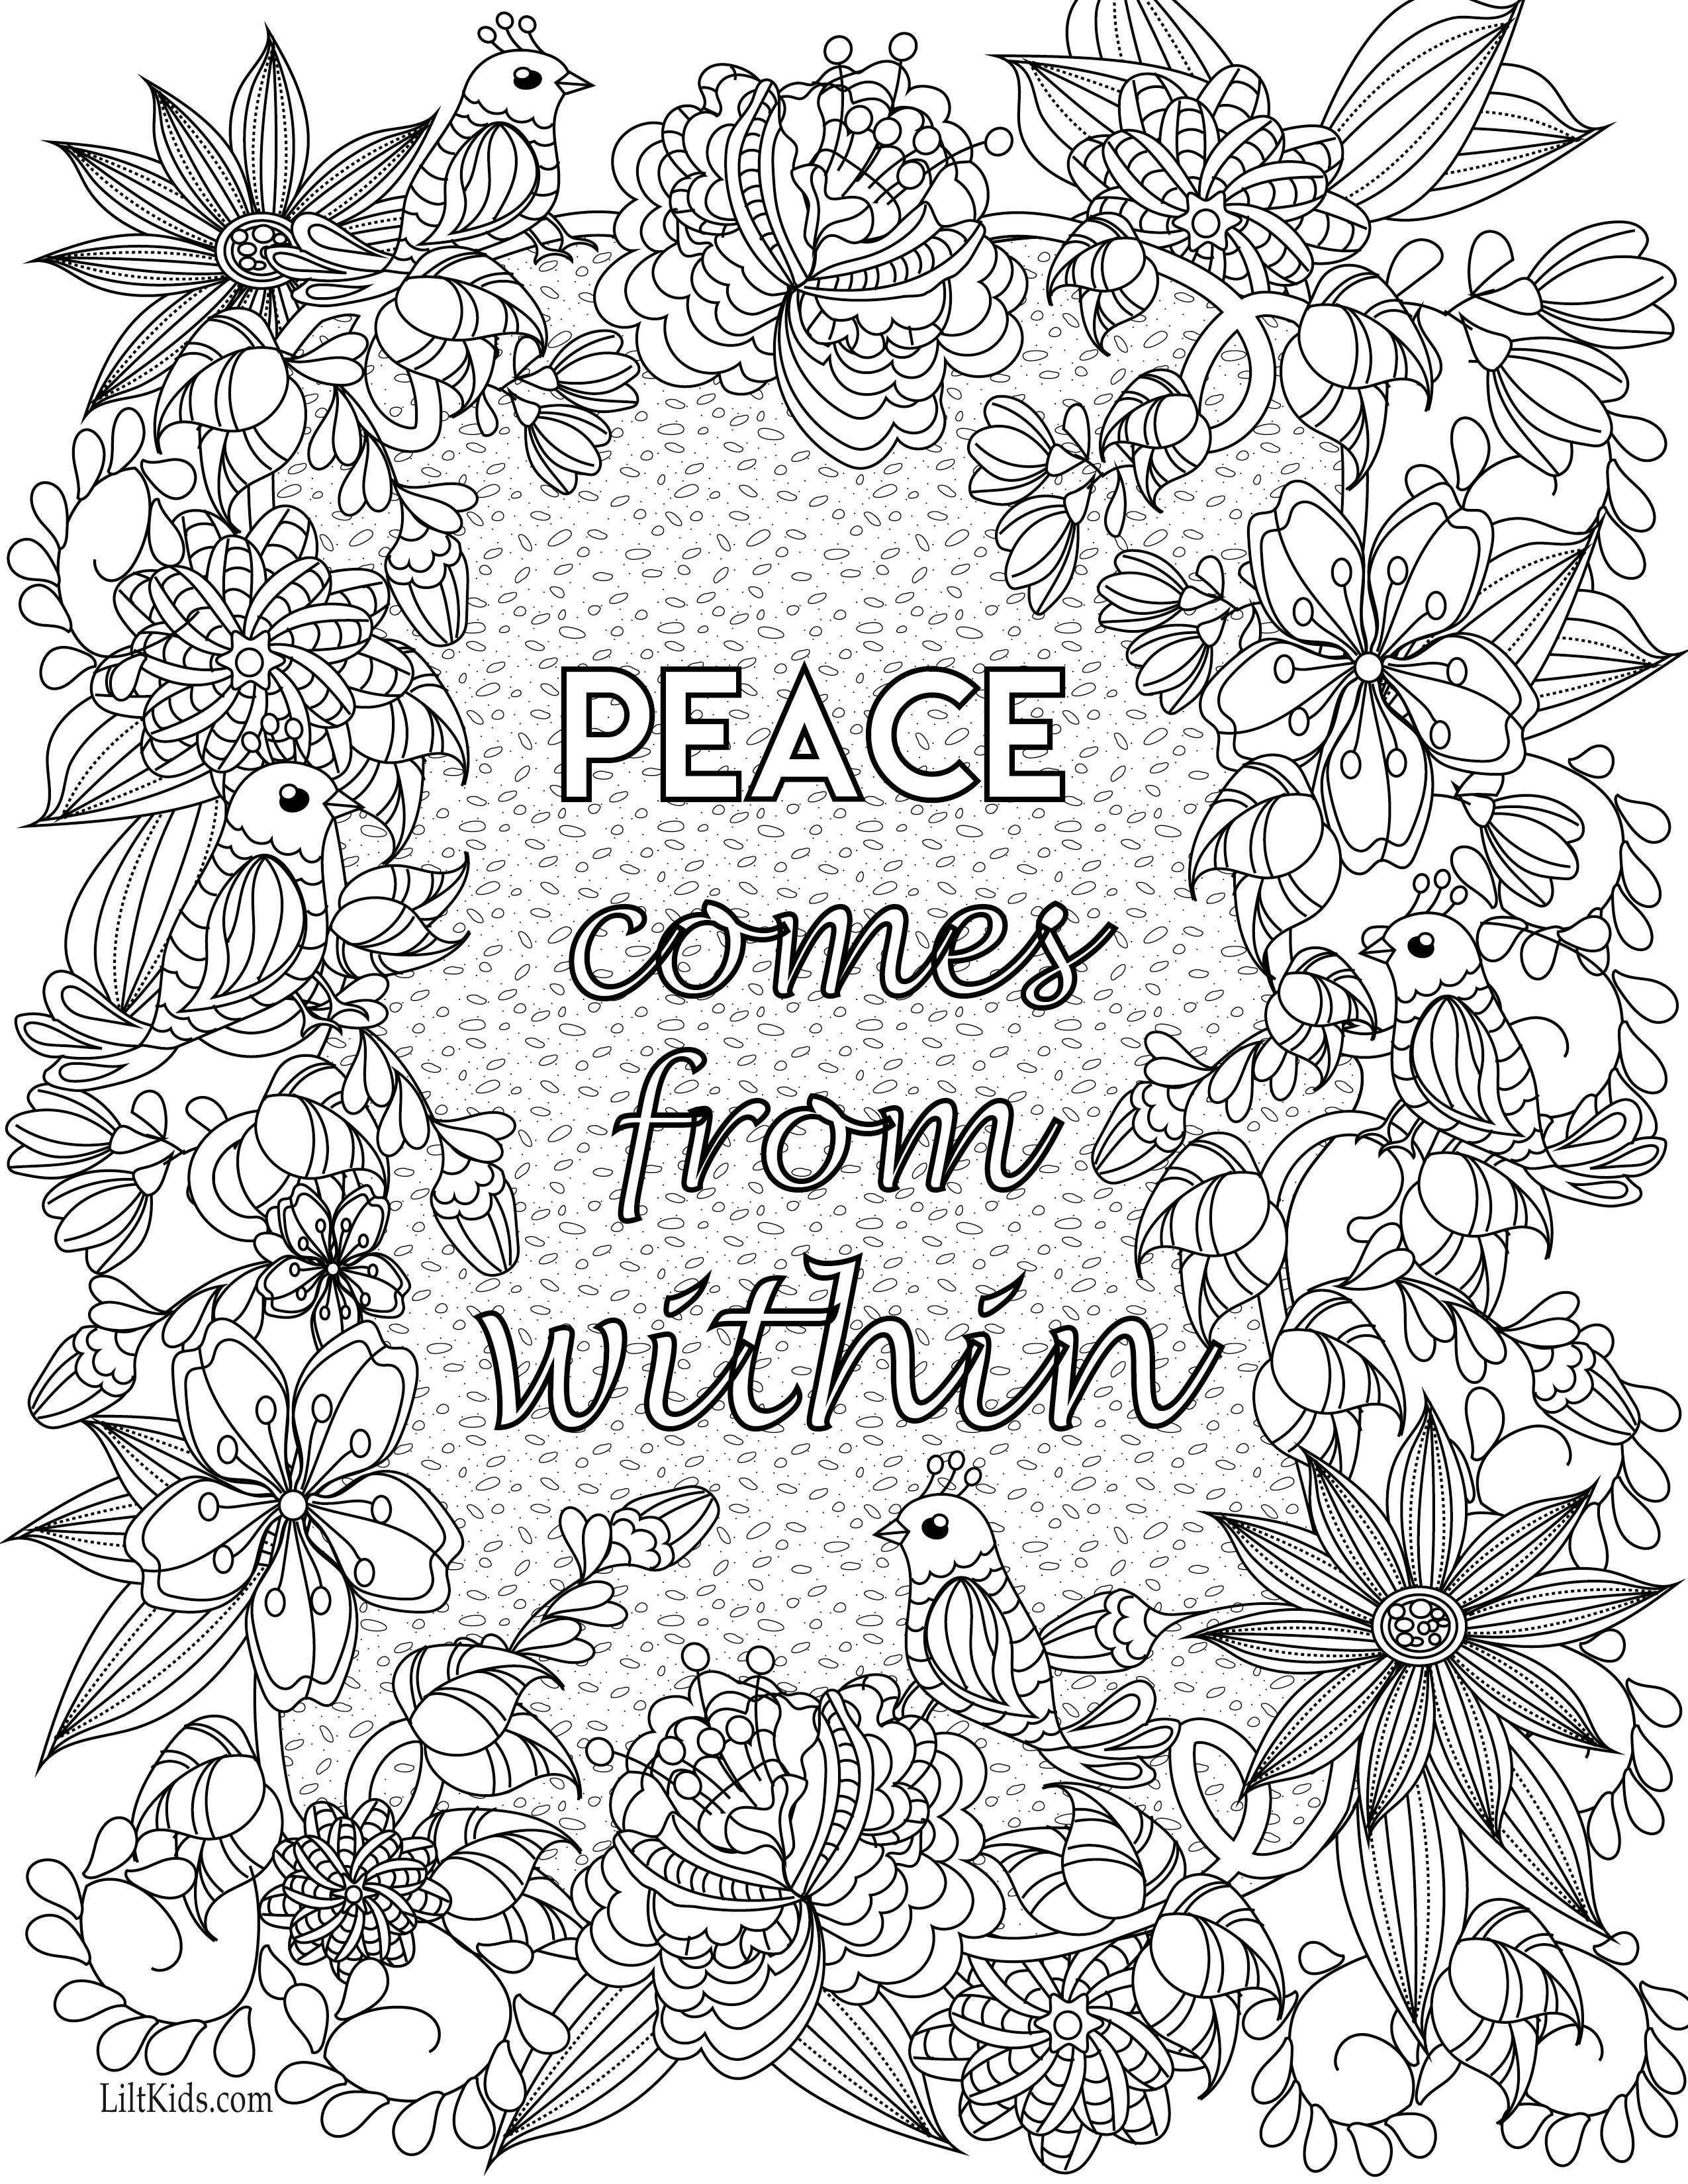 Coloring Pages : 41 Astonishing Free Printable Quotes Coloring Pages - Free Printable Inspirational Coloring Pages